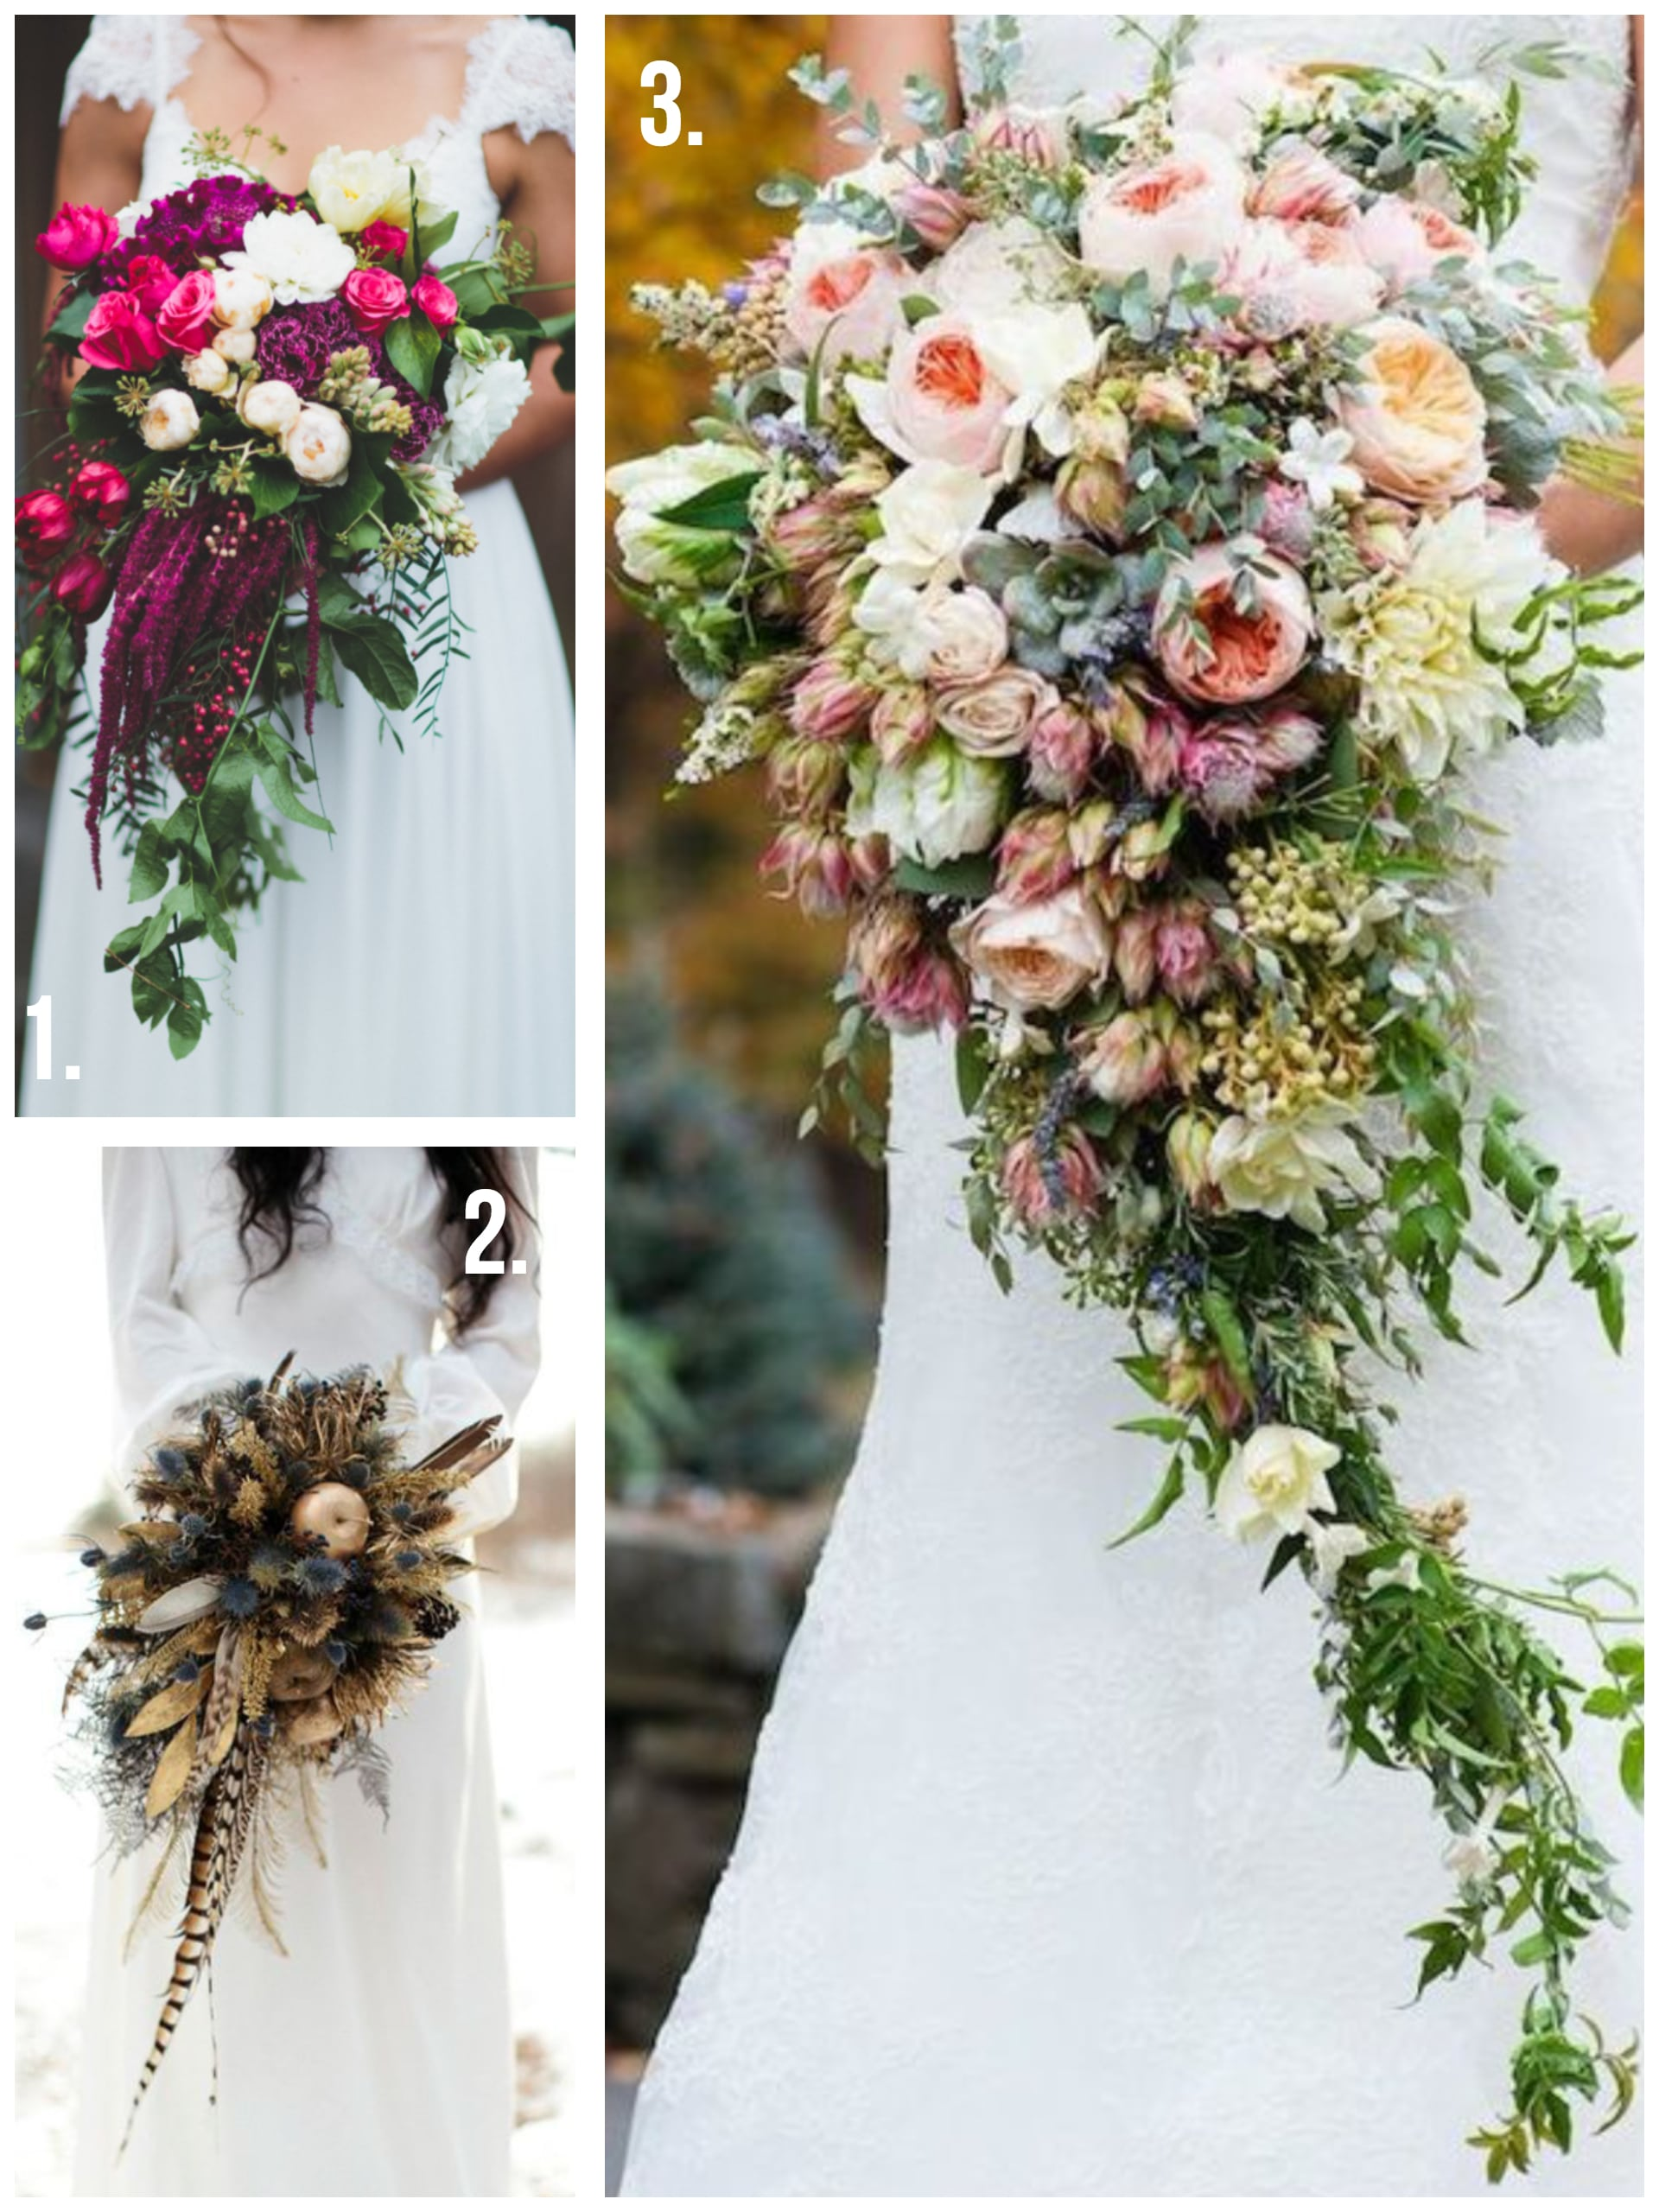 Wedding bouquets - three panel image of three different kinds of cascade bouquets